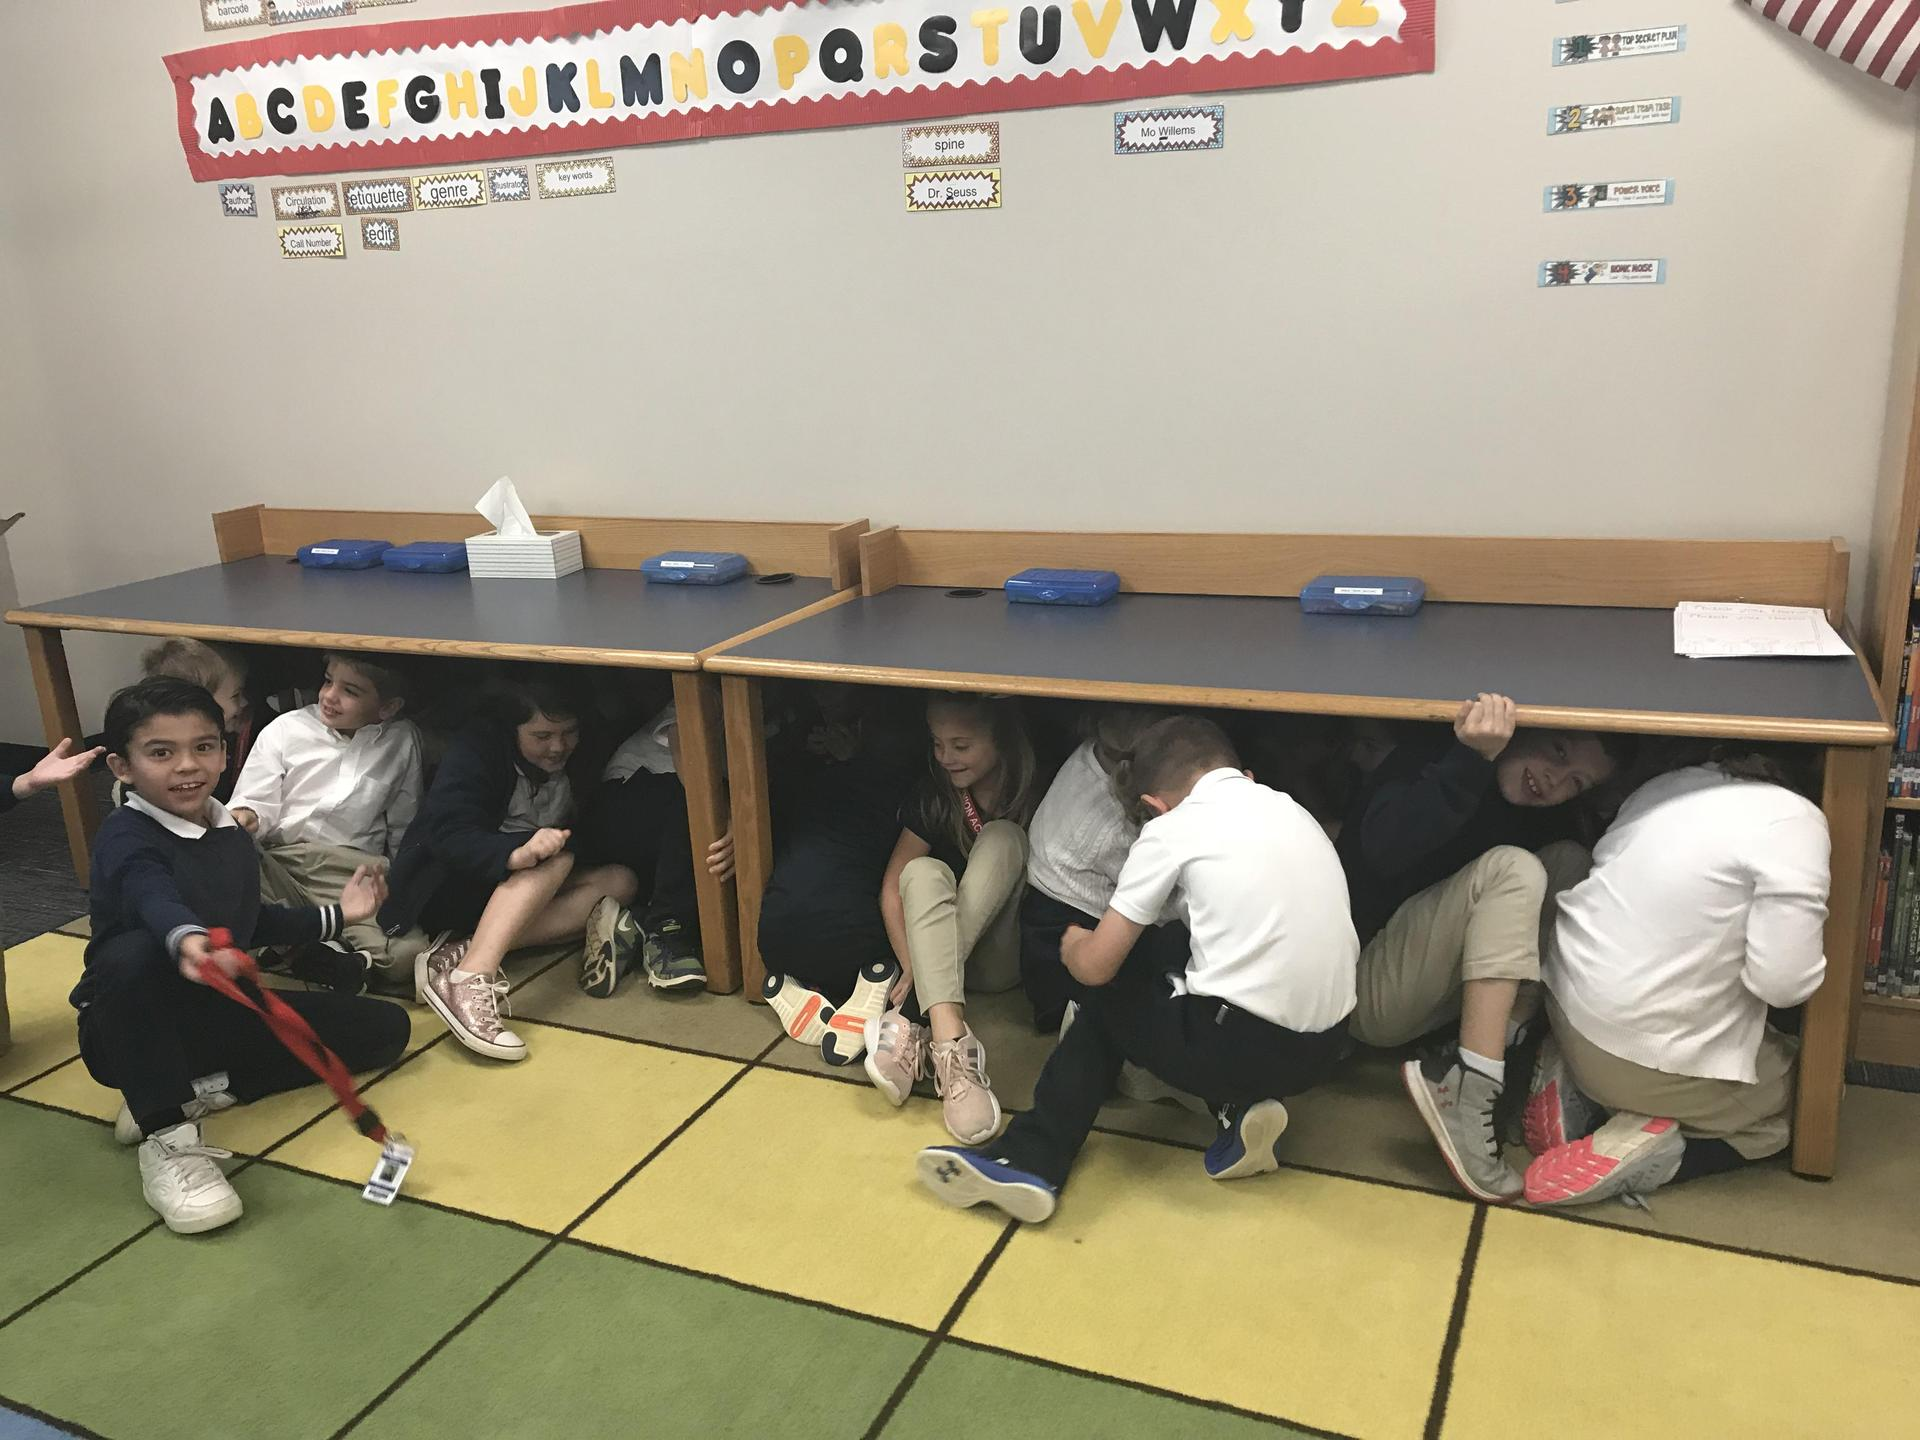 Second graders squeeze under library tables pretending they are squished on the Mayflower.